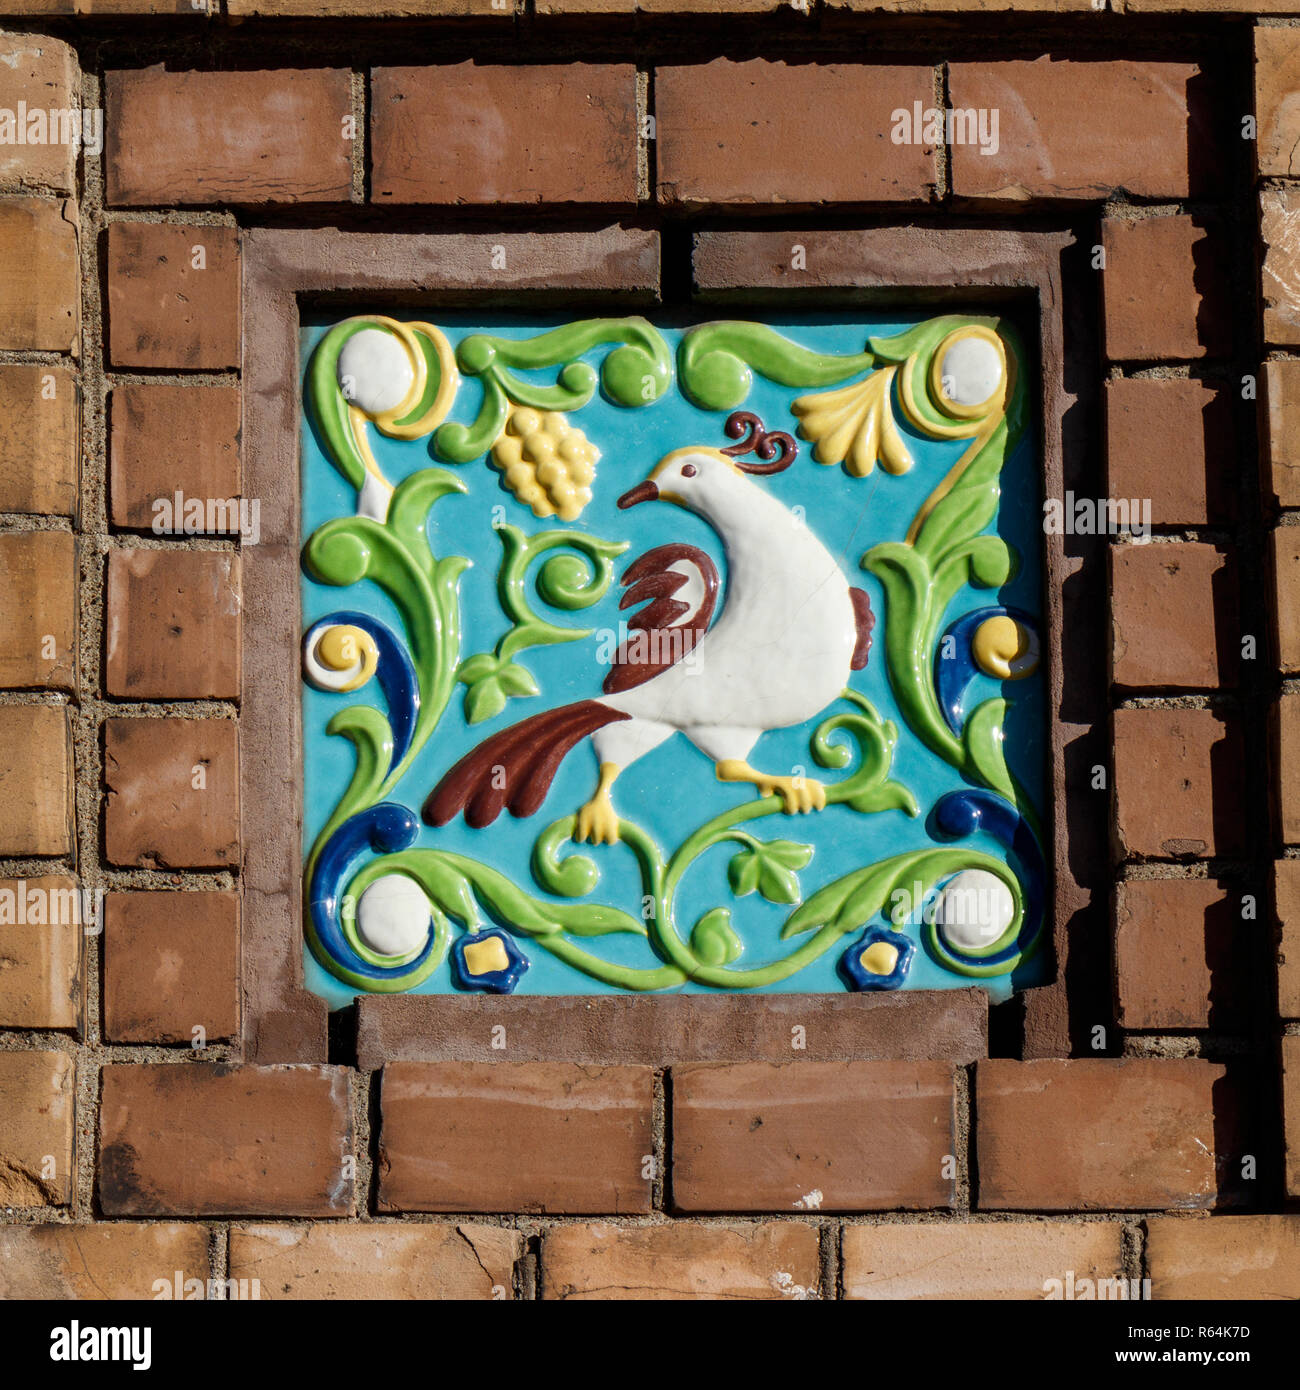 Decorative ceramic wall tile outside the Church of the Savior on Spilled Blood in Saint-Petersburg, Russia. - Stock Image